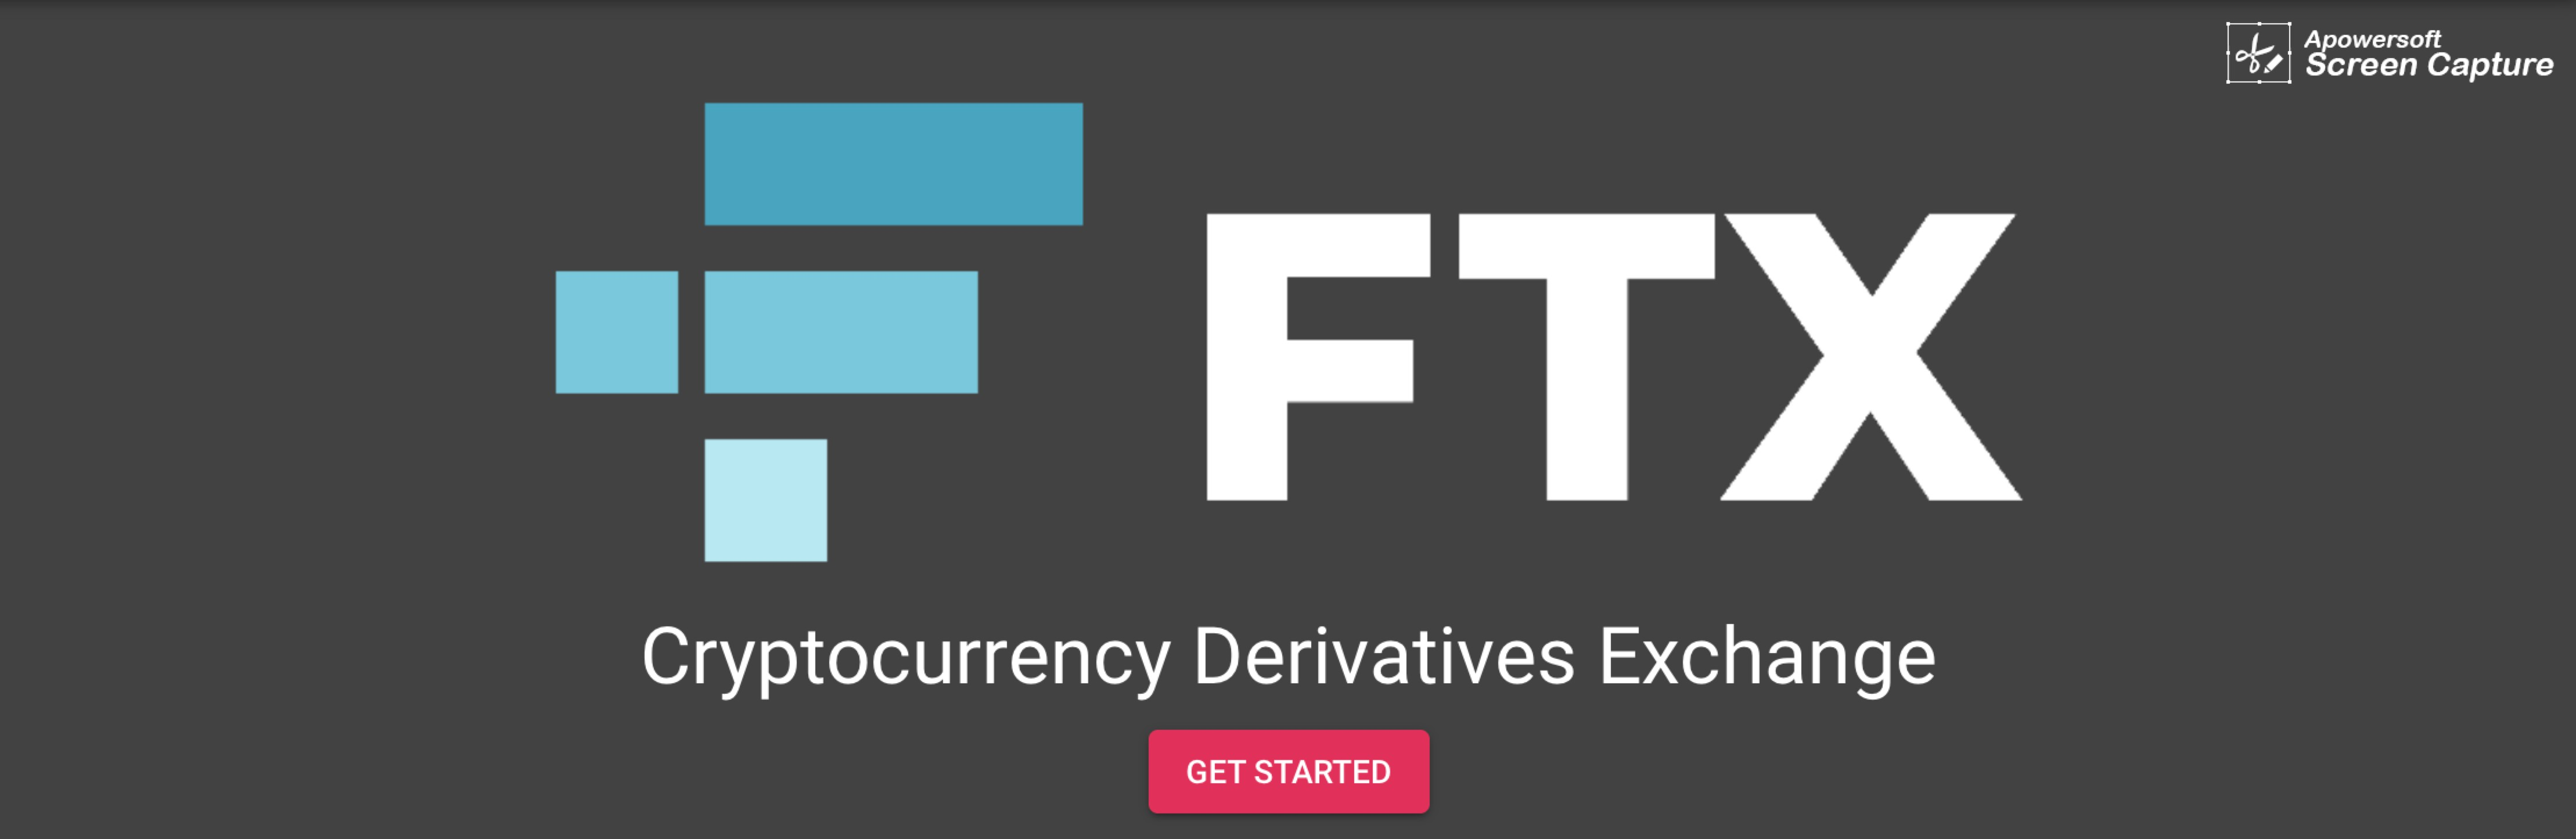 ftx cryptocurrency derivatives exchange